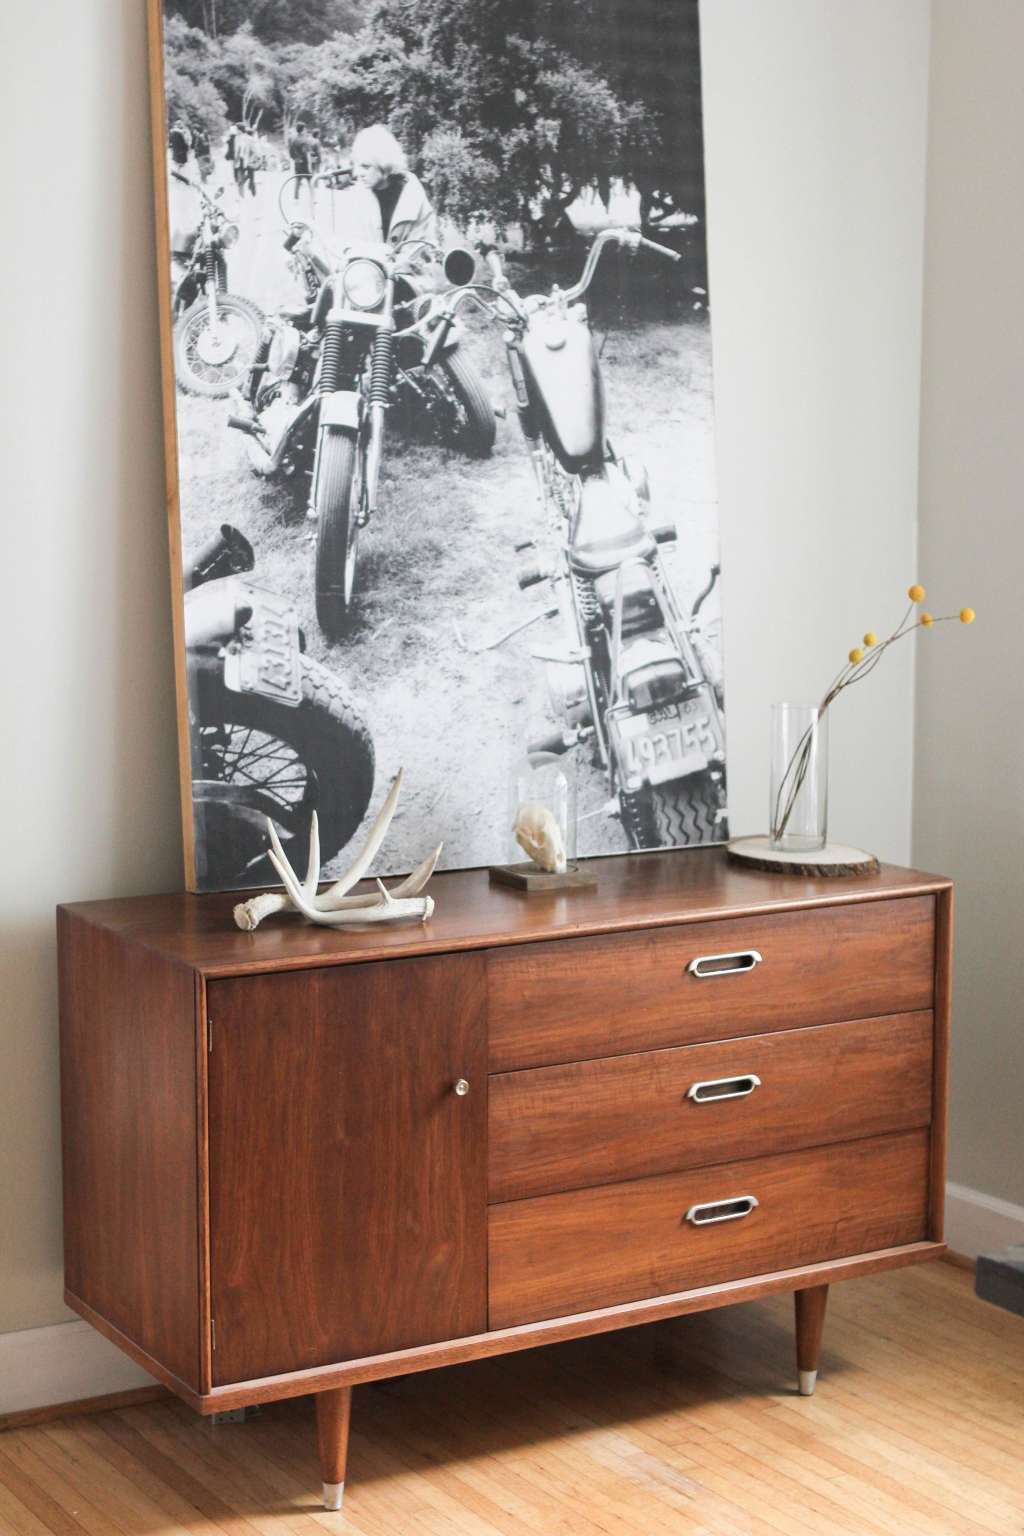 DIY Furniture Doctor: 10 Fixes for Common Wood Furniture Problems